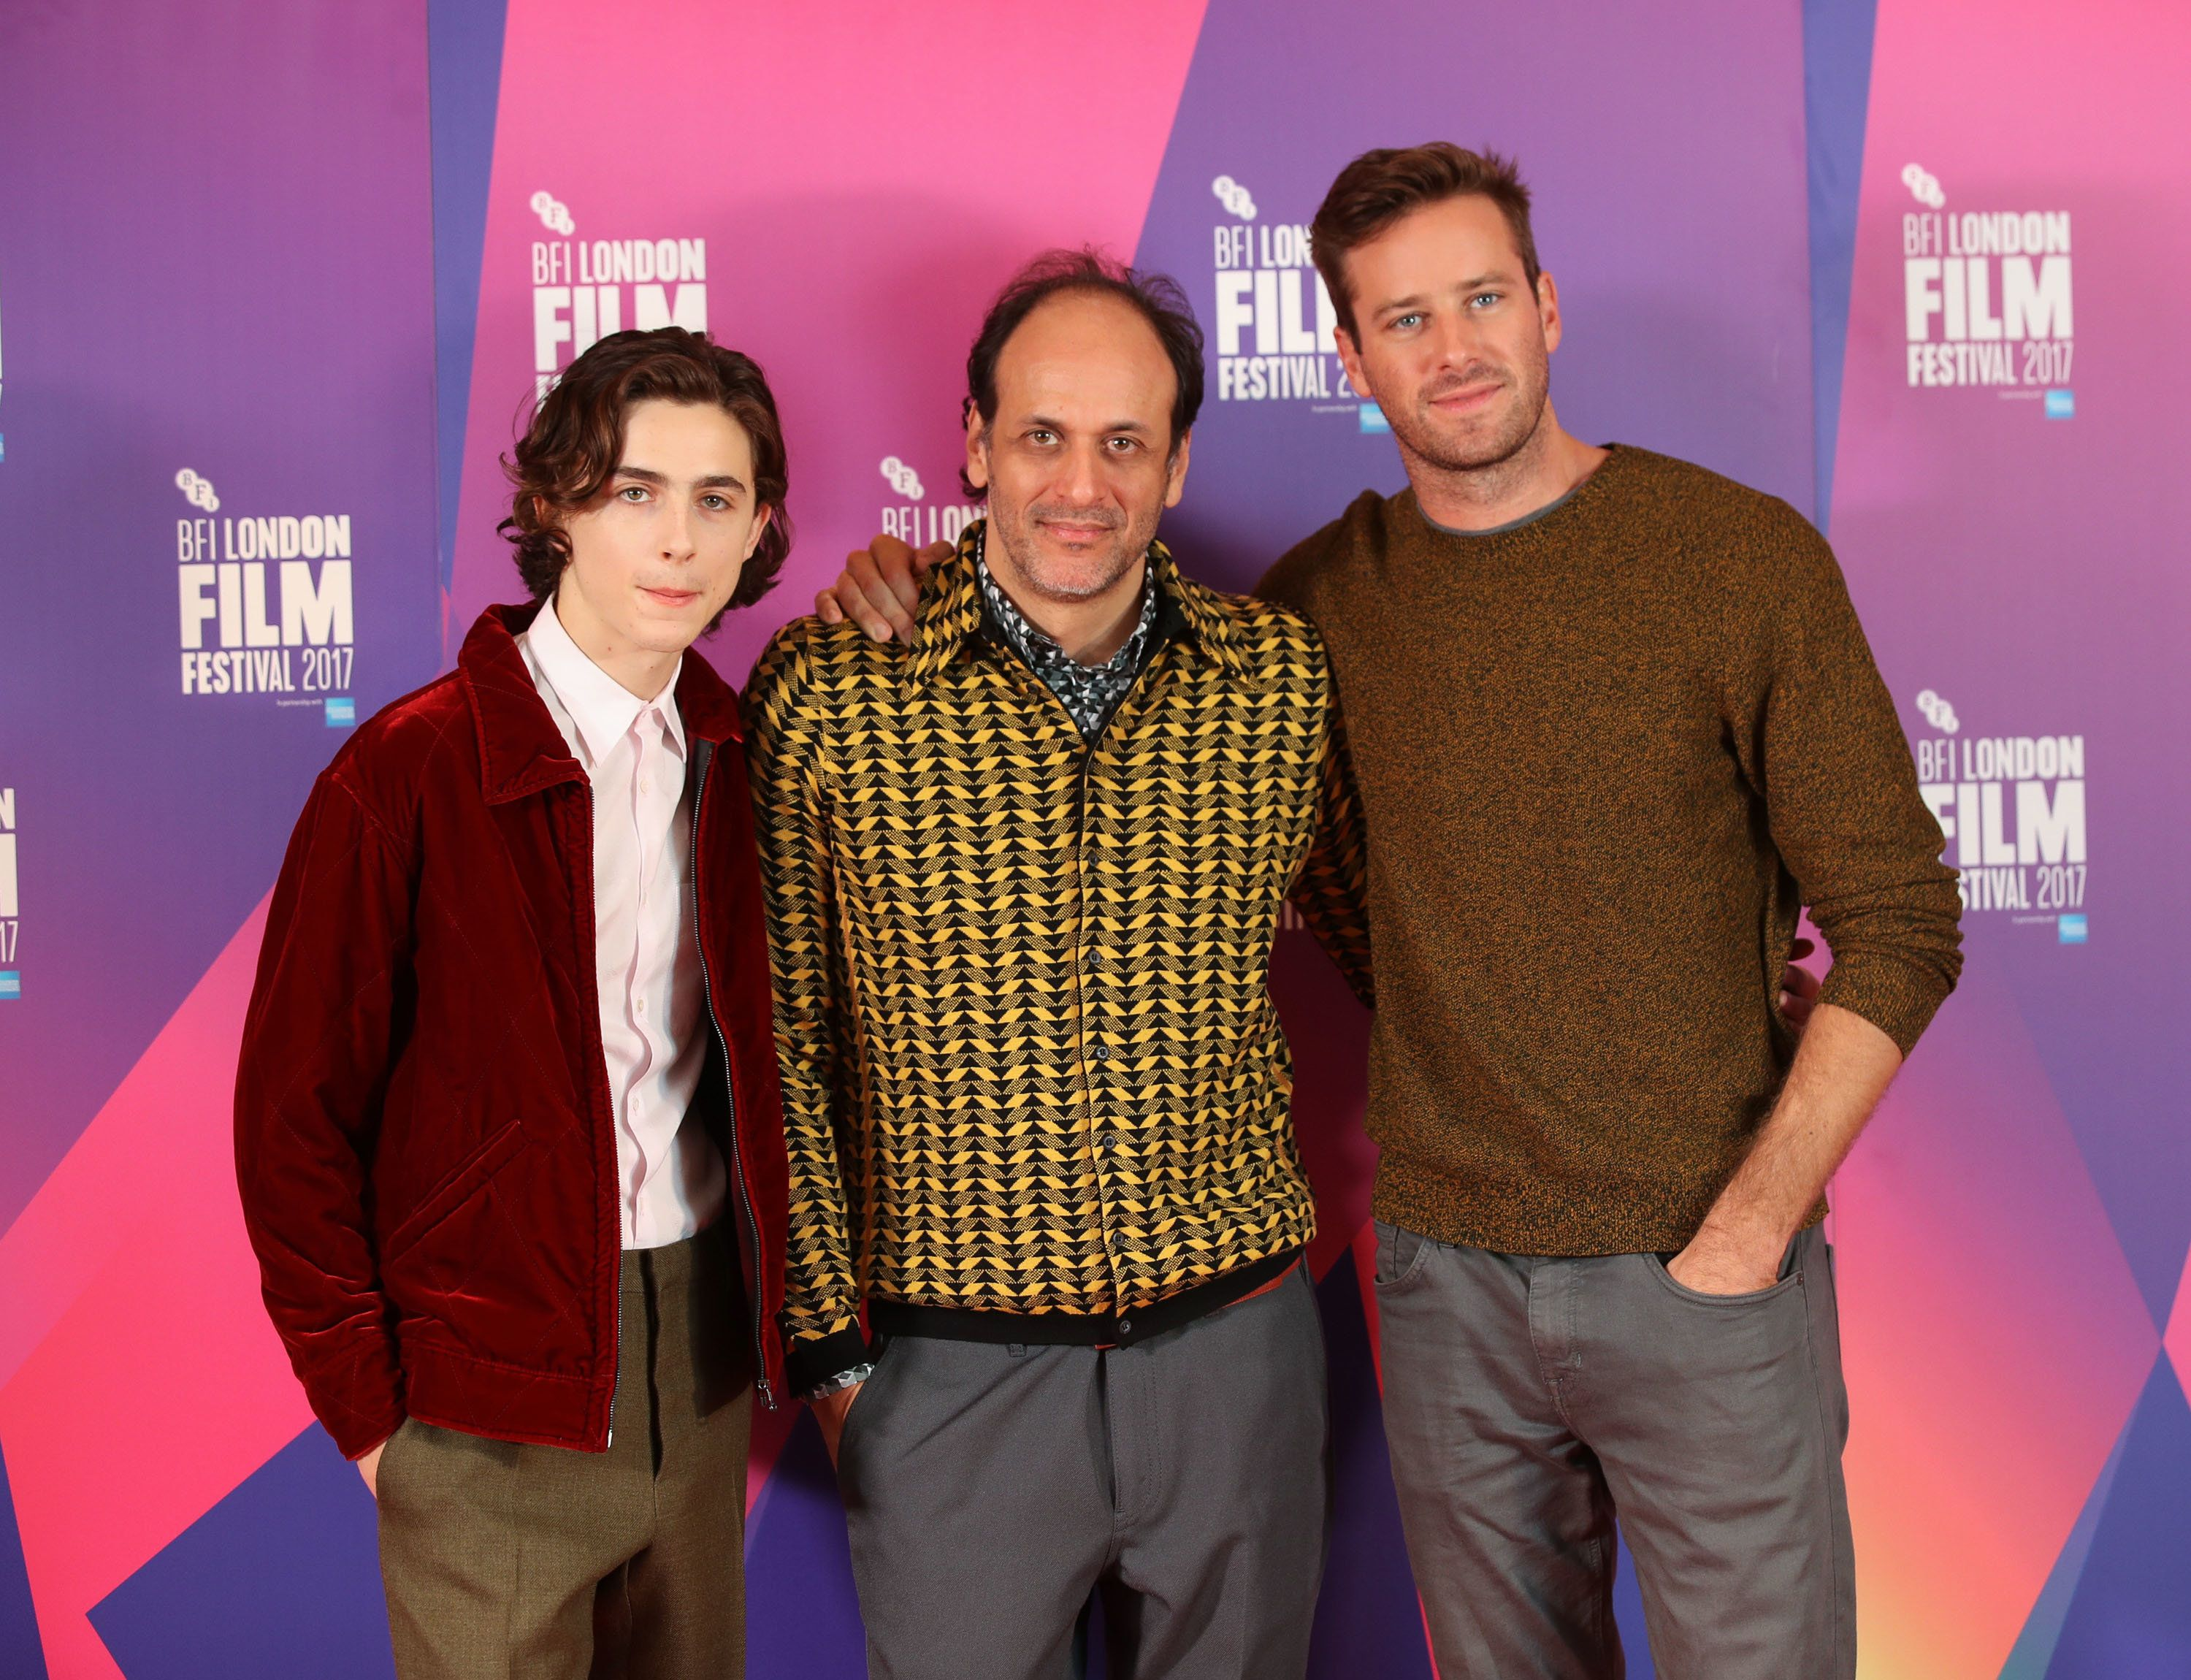 LONDON, ENGLAND - OCTOBER 09:  Timothee Chalamet, Luca Guadagnino and Armie Hammer, attend a photocall for 'Call Me By Your Name' during the 61st BFI London Film Festival on October 9, 2017 in London, England.  (Photo by Mike Marsland/Mike Marsland/WireImage)